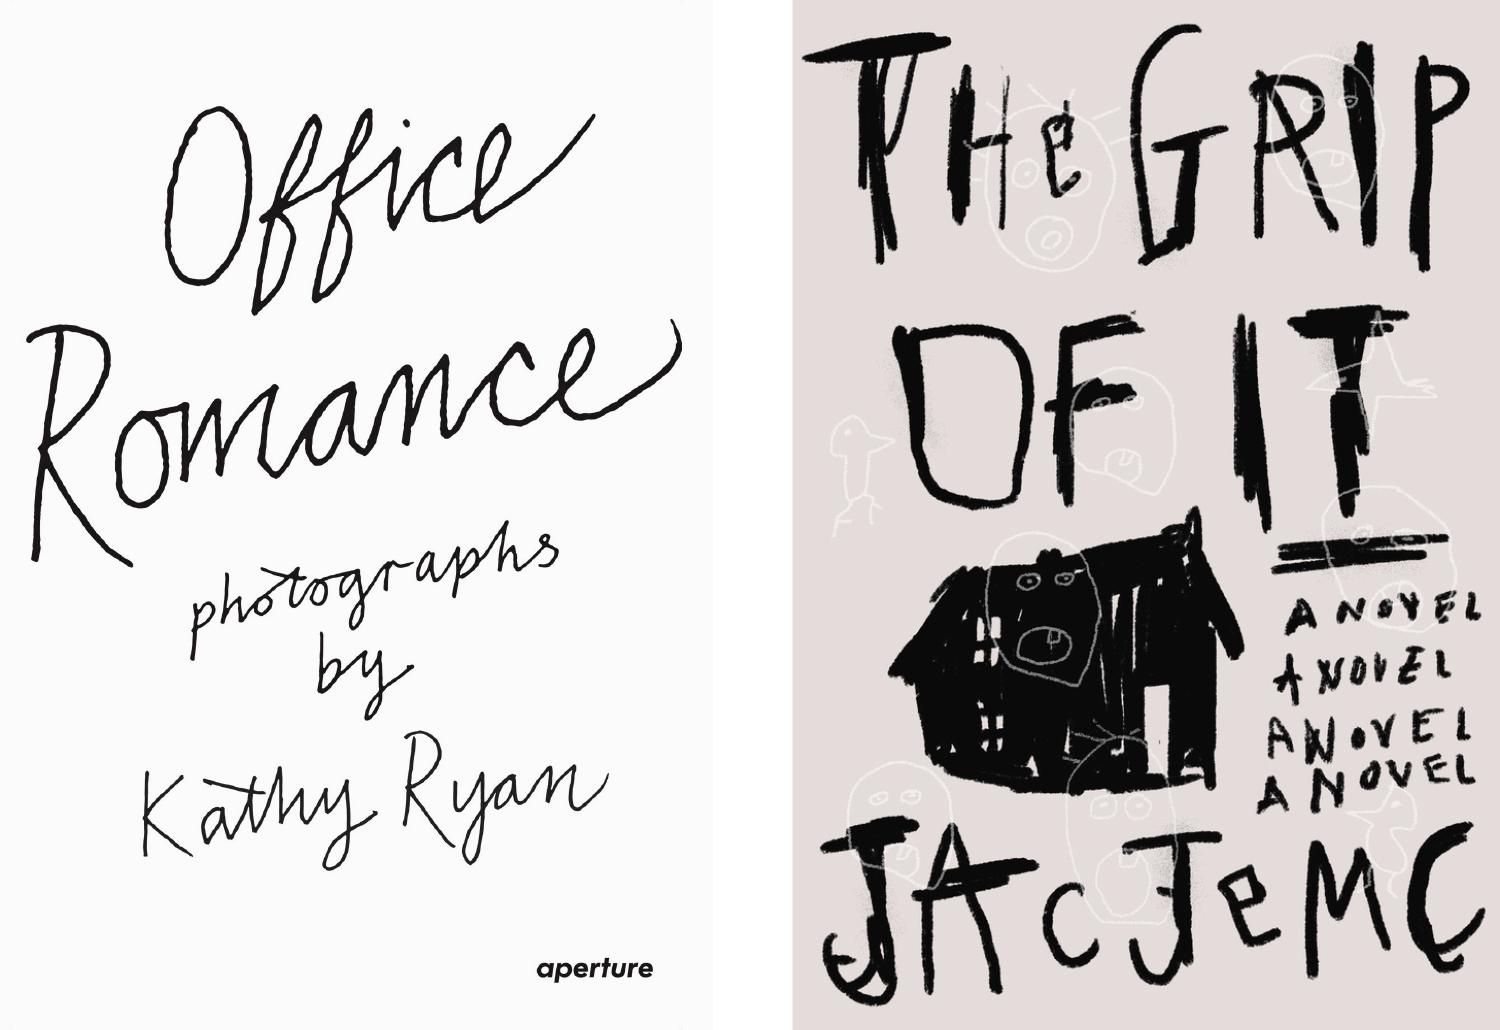 Office Romance and The Grip of It covers